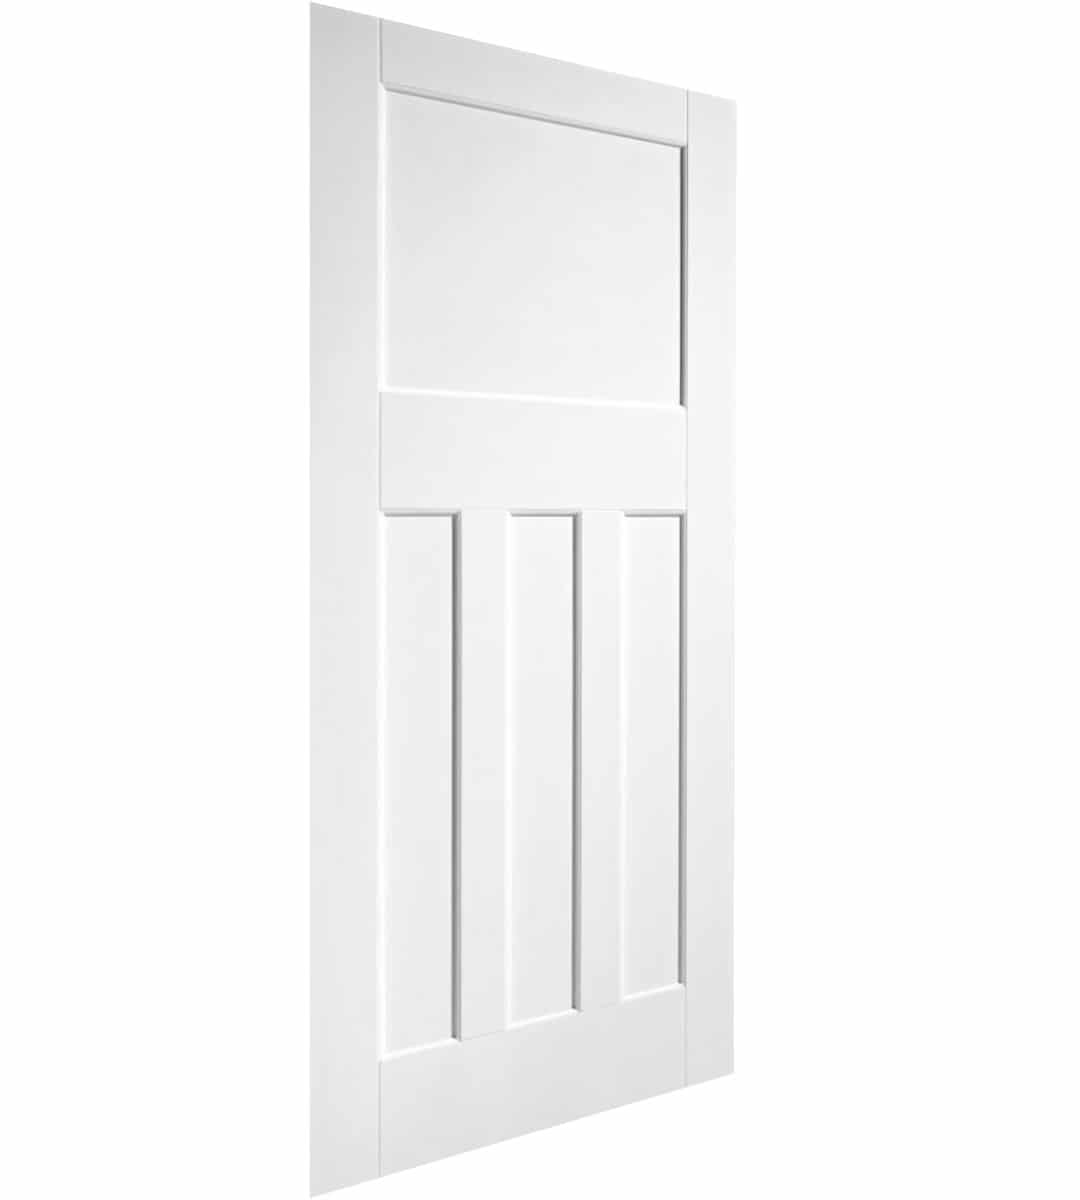 dx-30-internal-white-door-skew